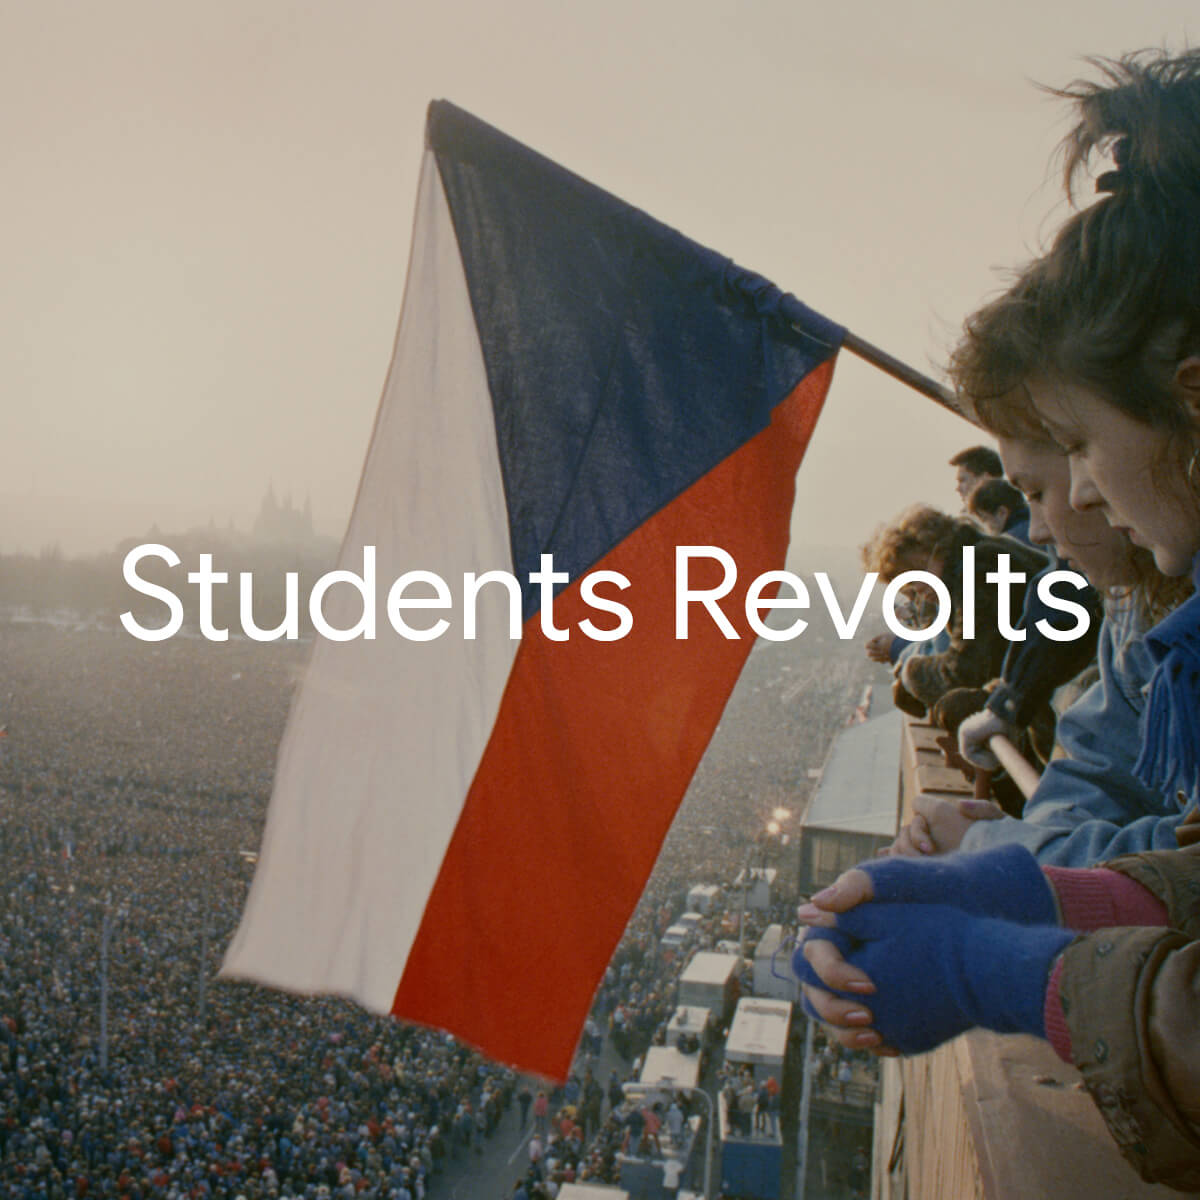 Google Arts & Culture - Students Revolts